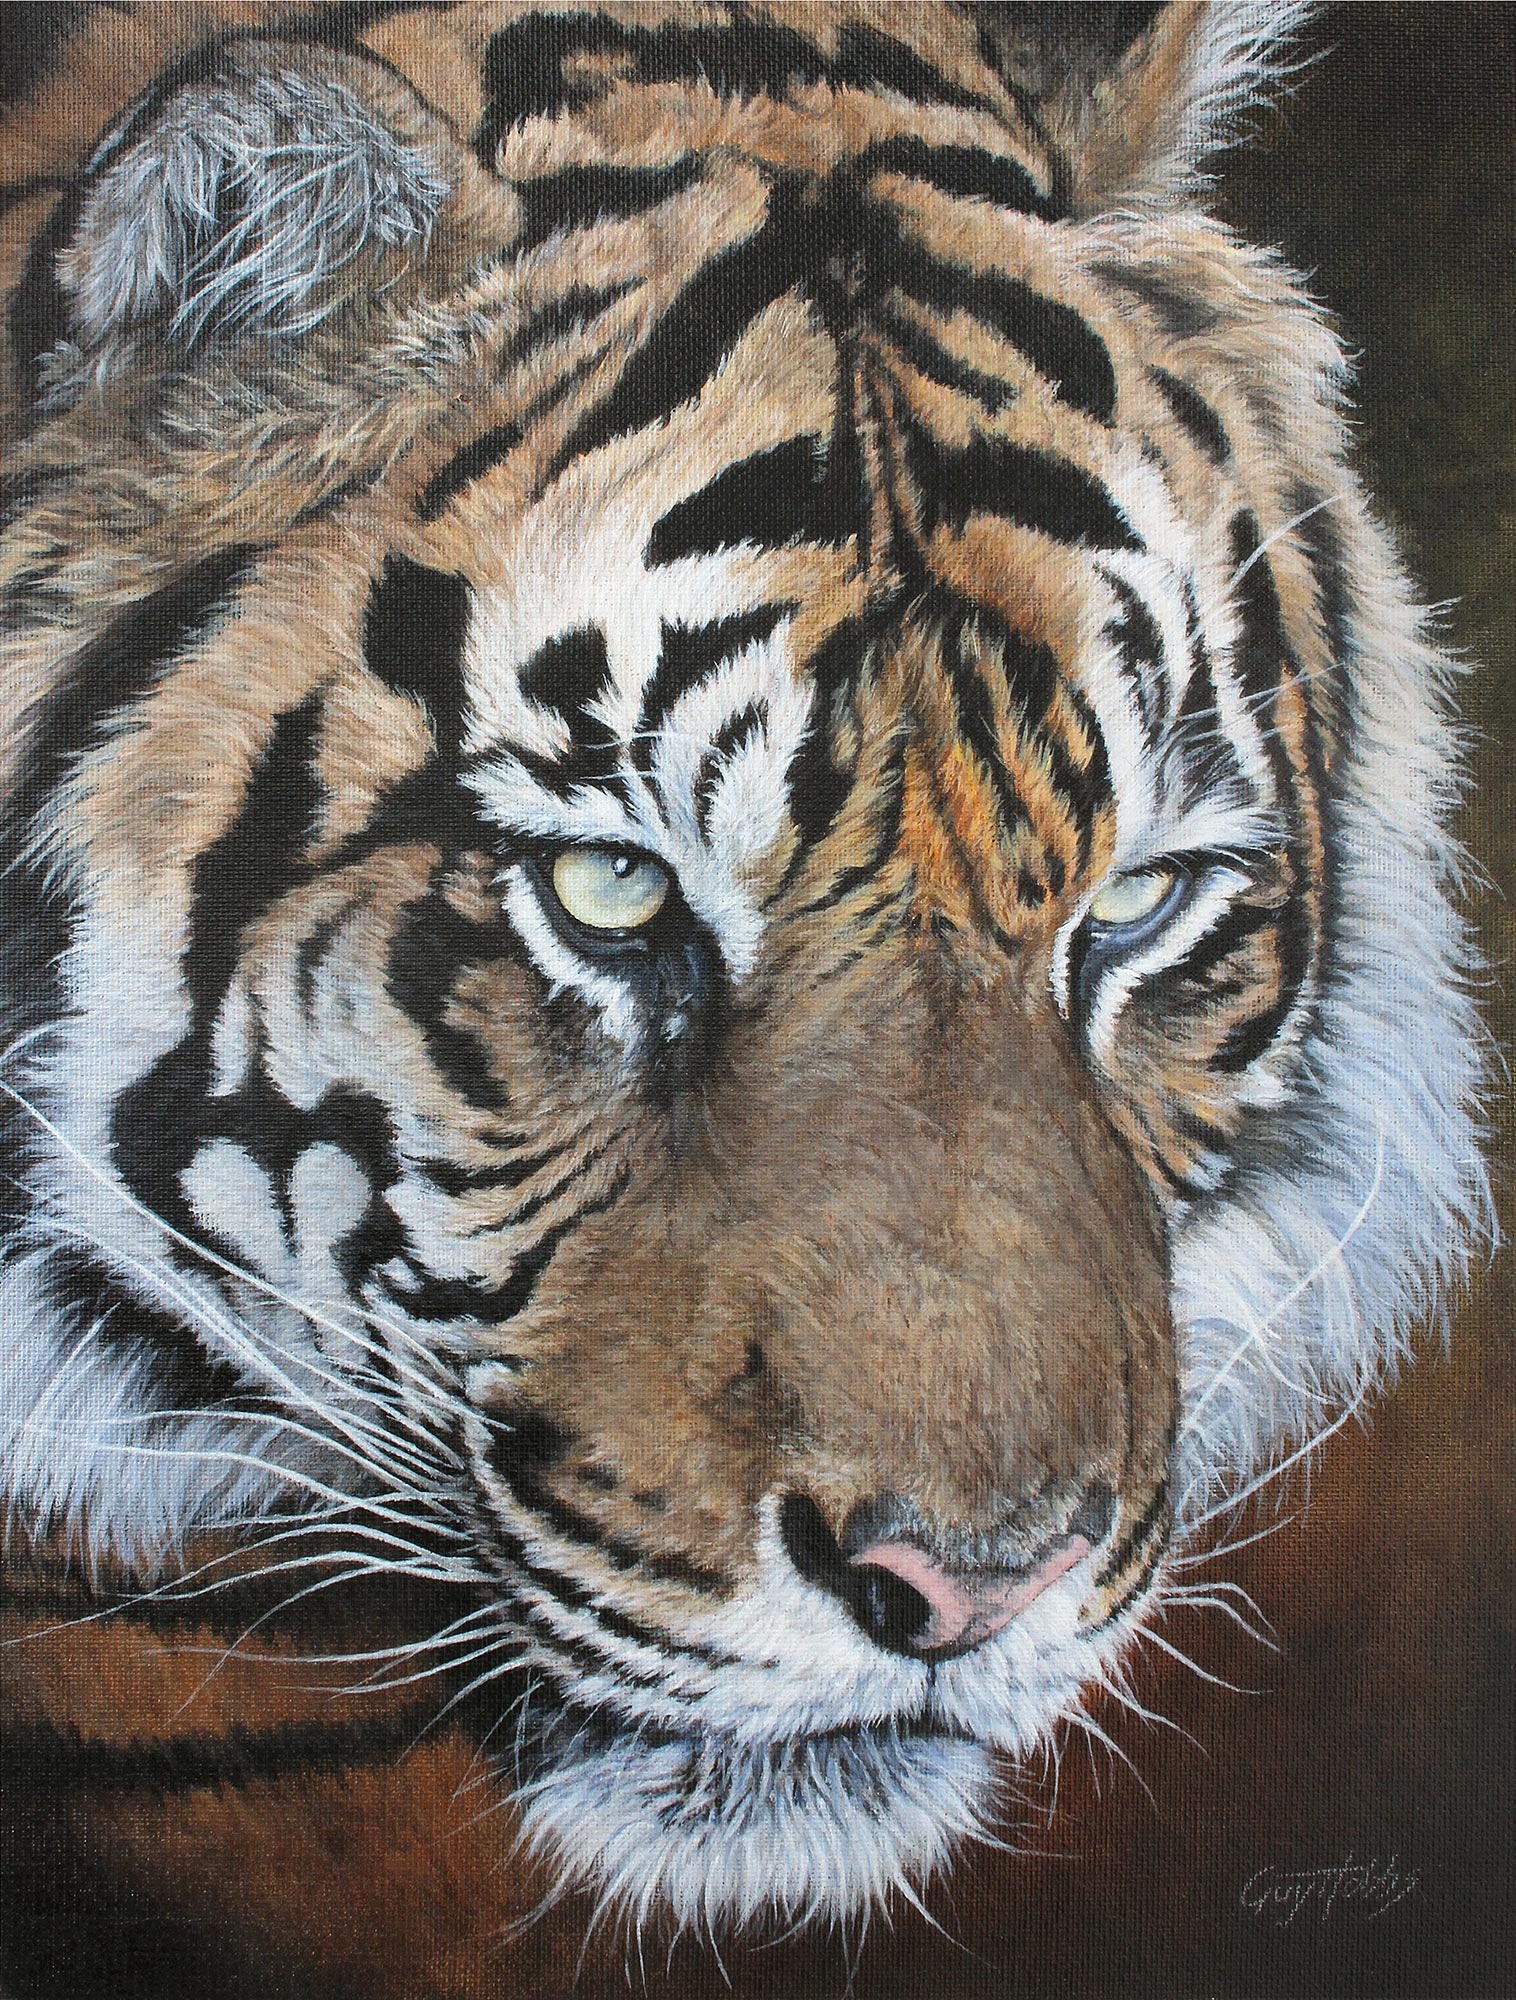 Fearful Symmetry-Tiger Art Collection